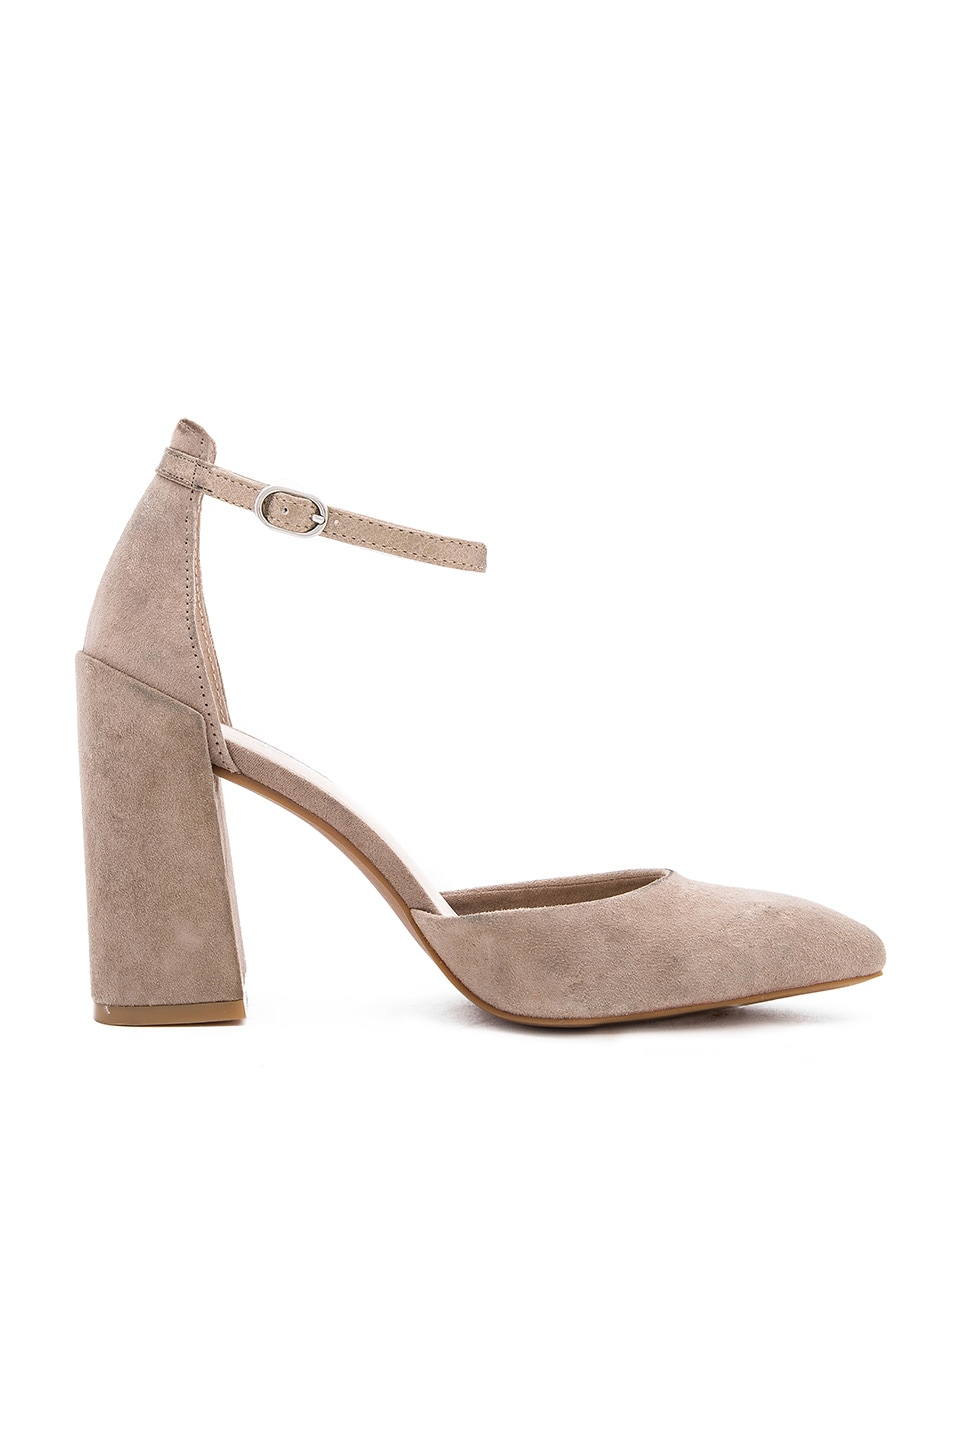 Seychelles Gaggle Heels in Taupe & Platinum